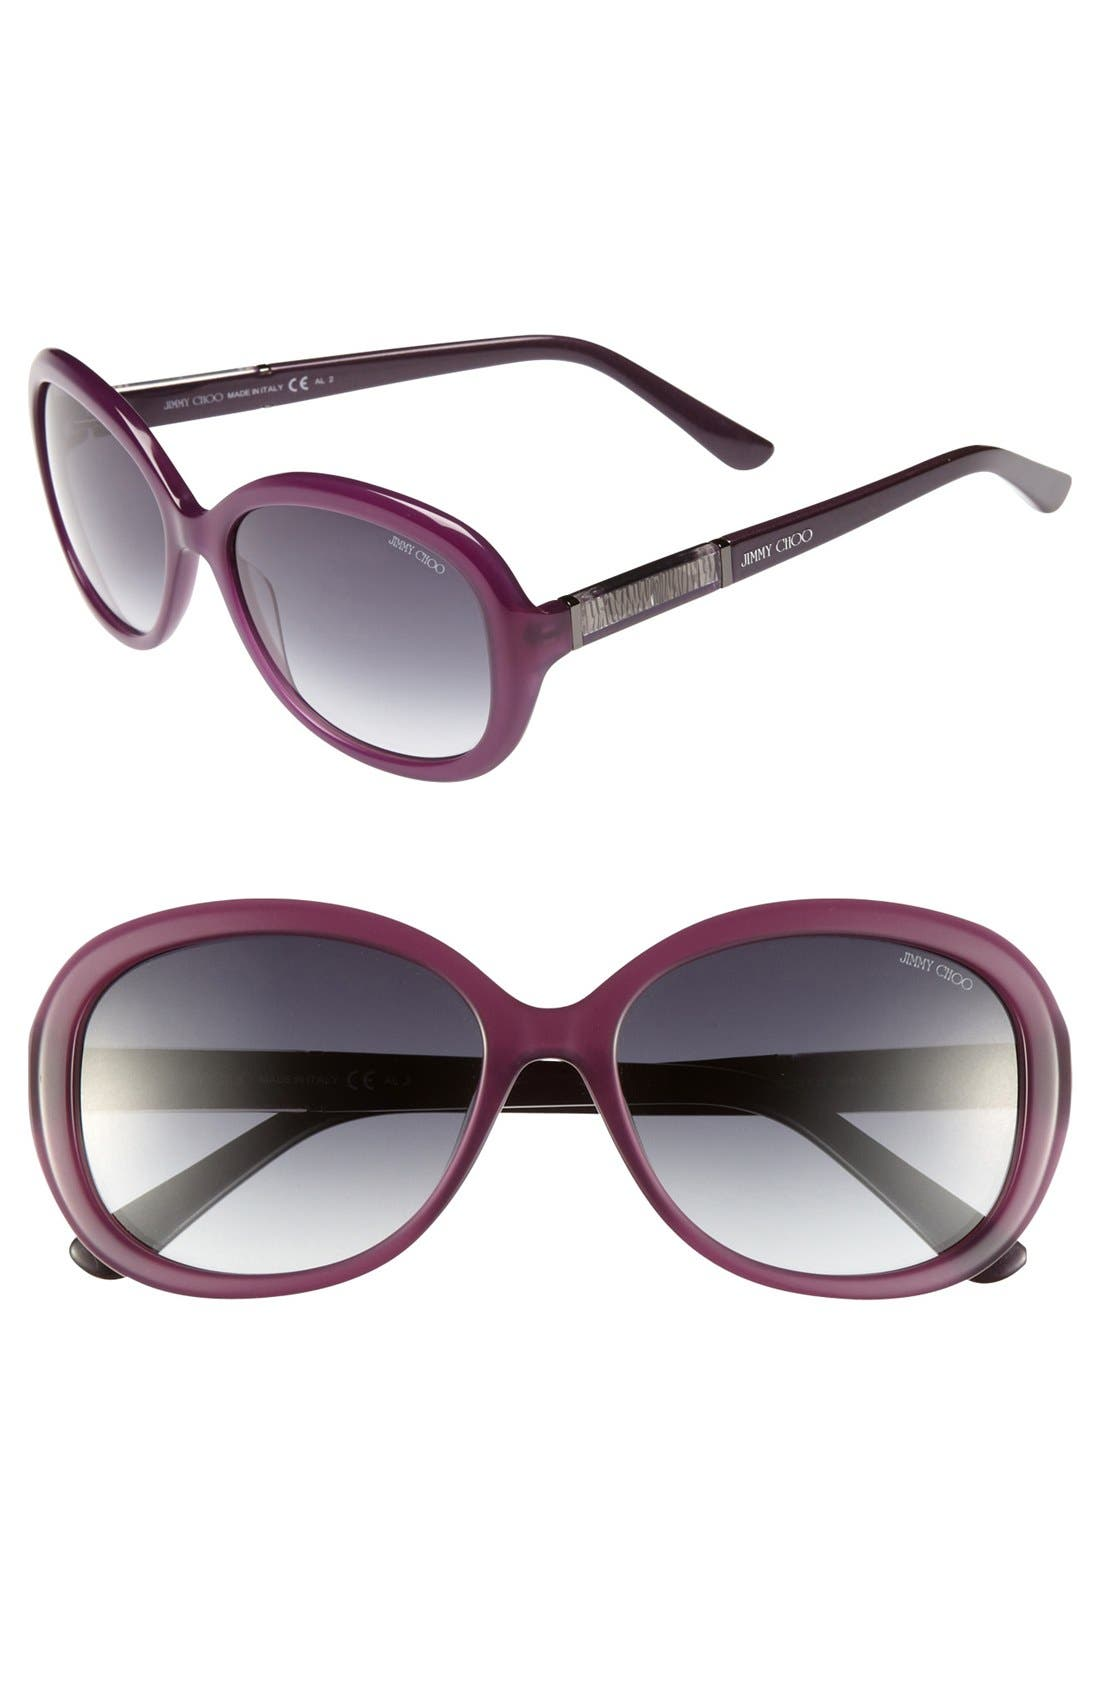 Alternate Image 1 Selected - Jimmy Choo 'Monique' 56mm Classic Sunglasses